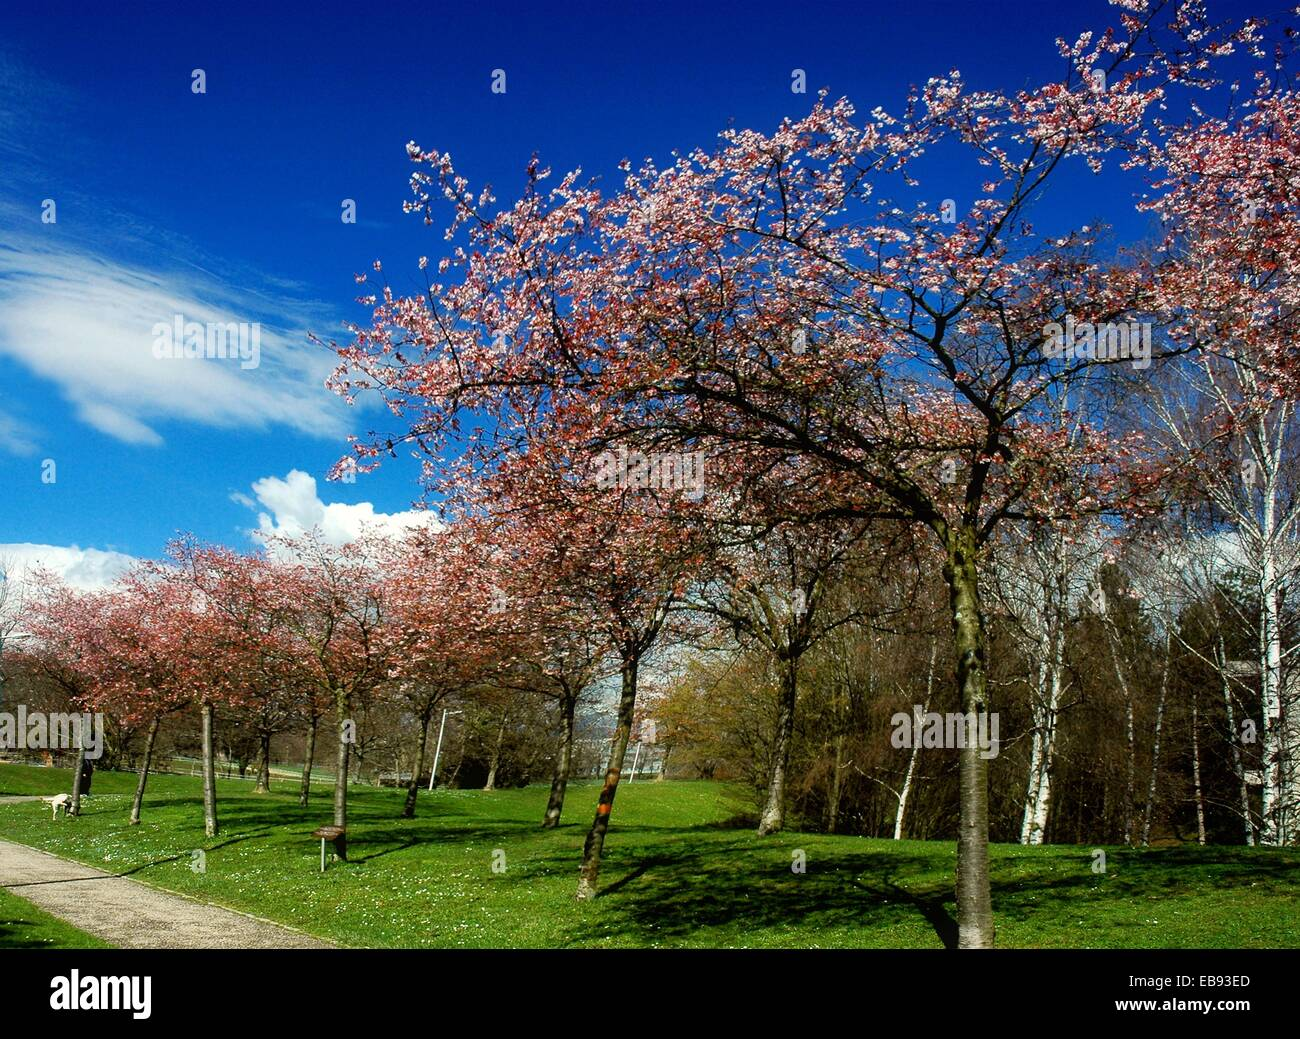 blossoming fruit trees against the blue sky, symbol of spring. Park in front of ILO building, Geneva, Switzerland - Stock Image